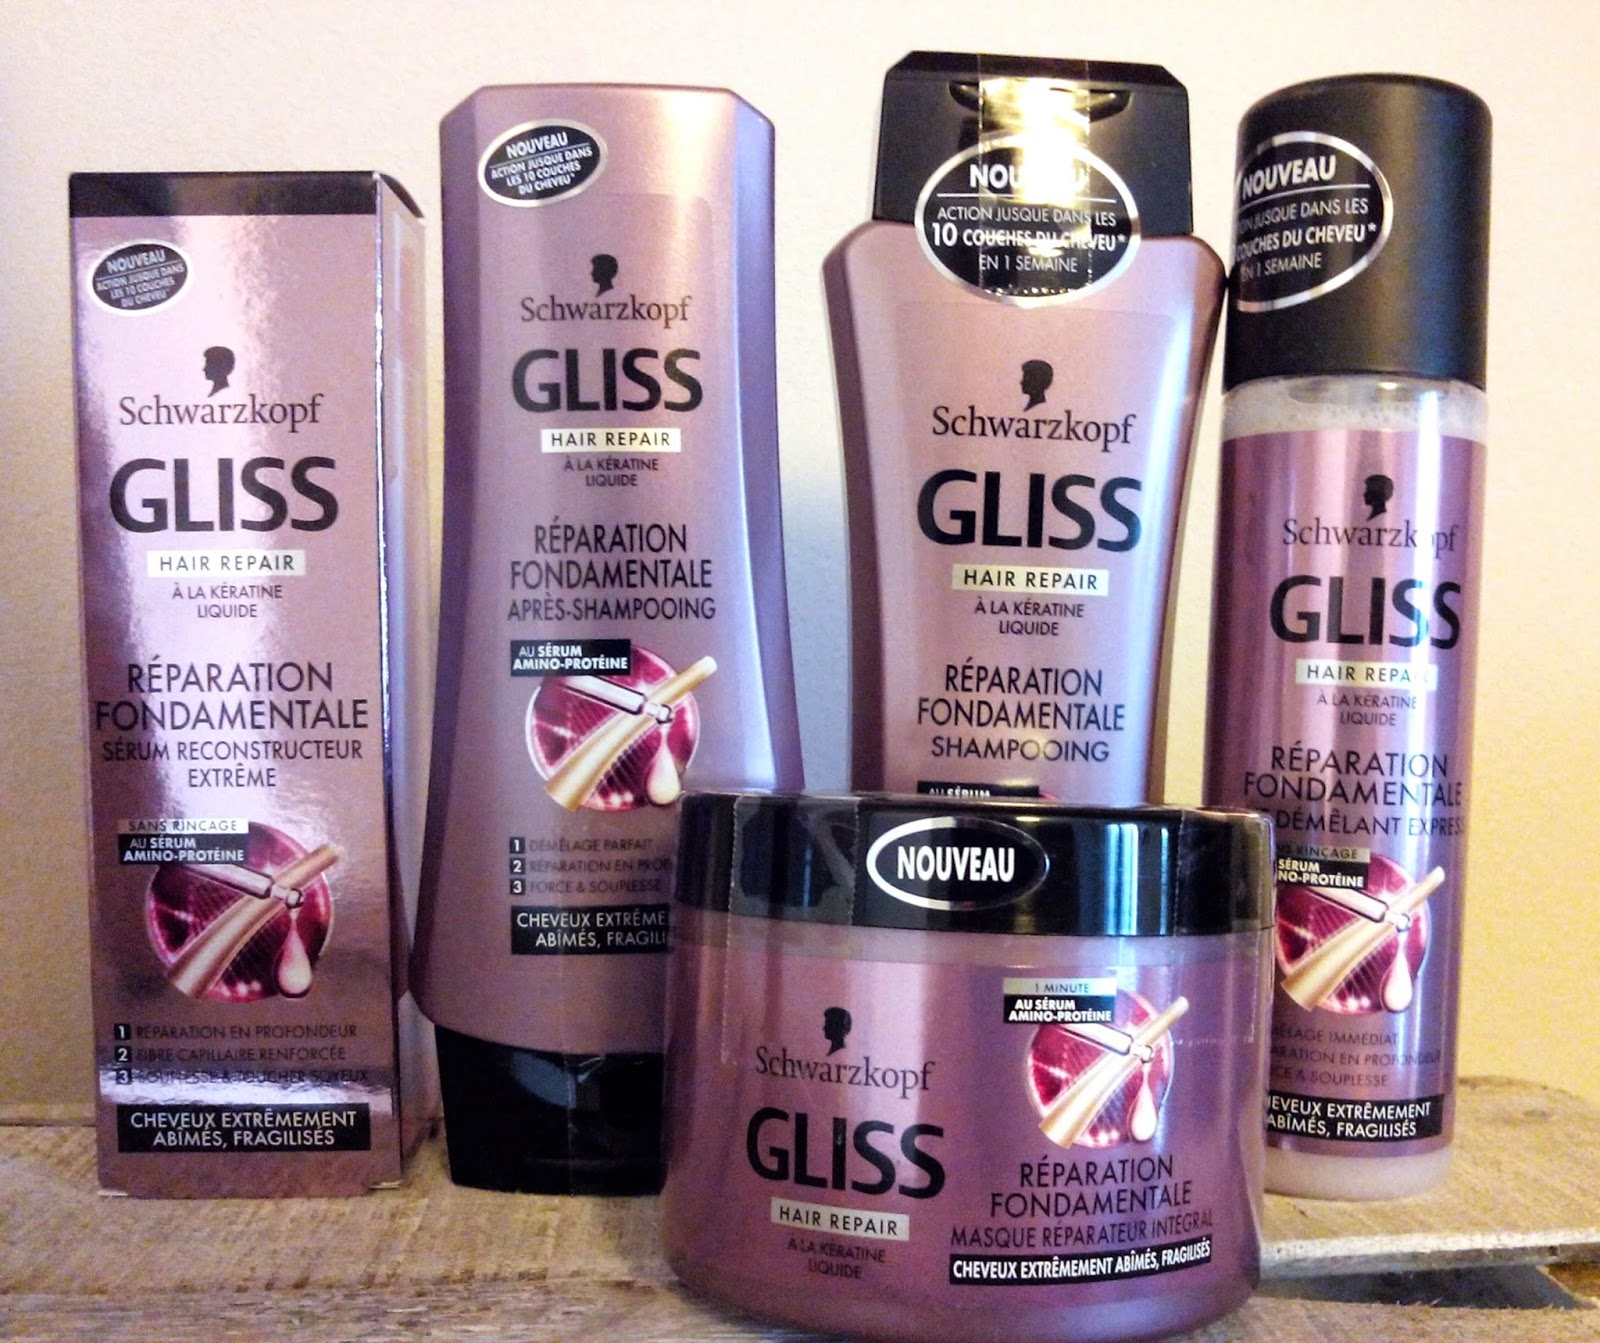 Schwarzkopf, shampooing, soin, cheveux, capillaire, bullelodie